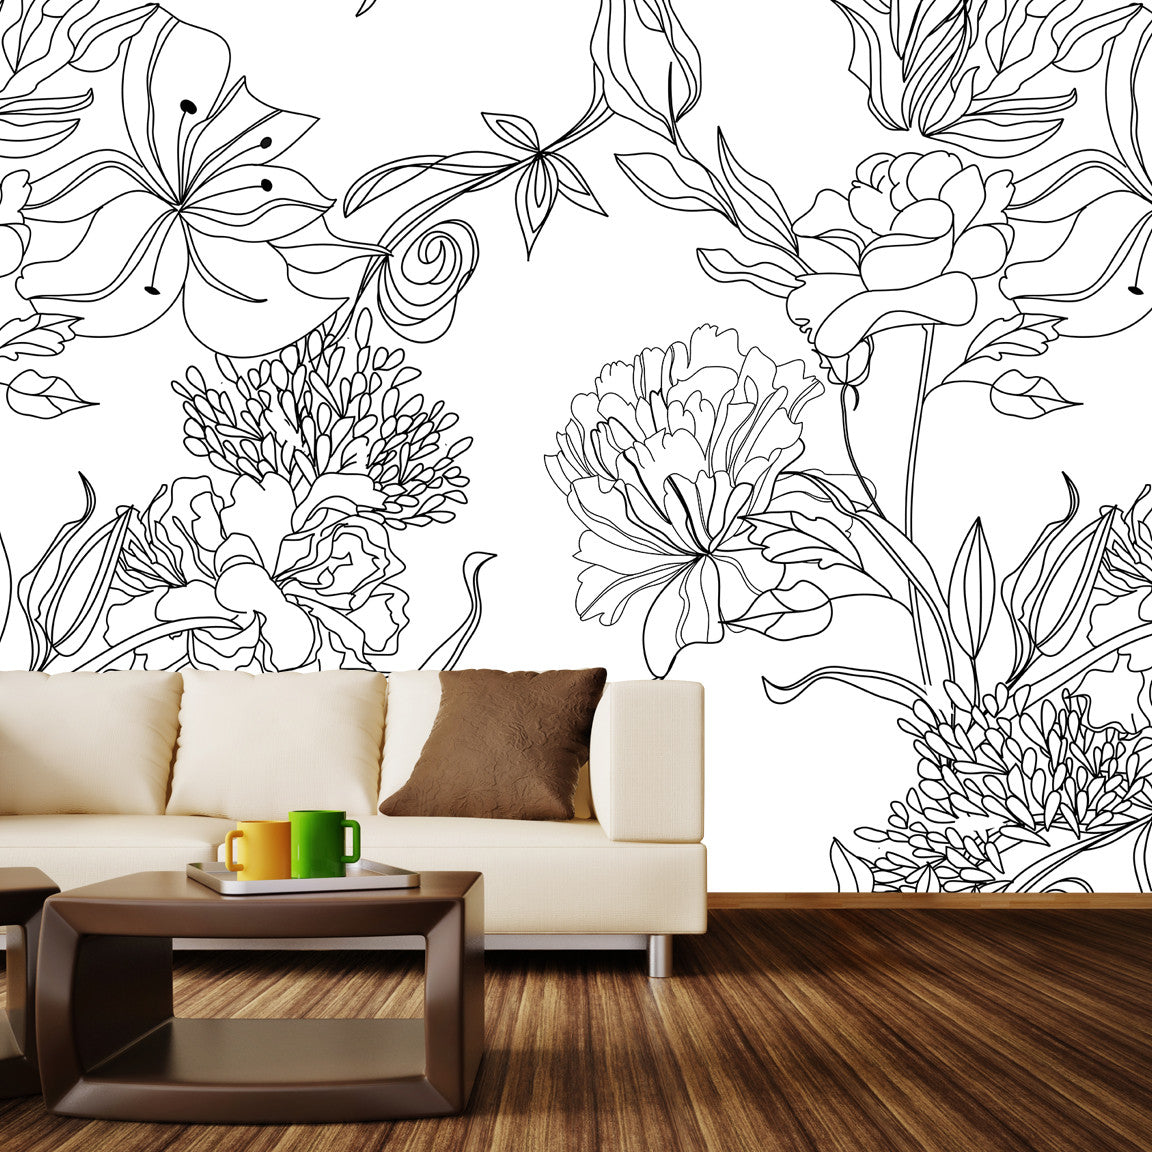 Floral mural collection